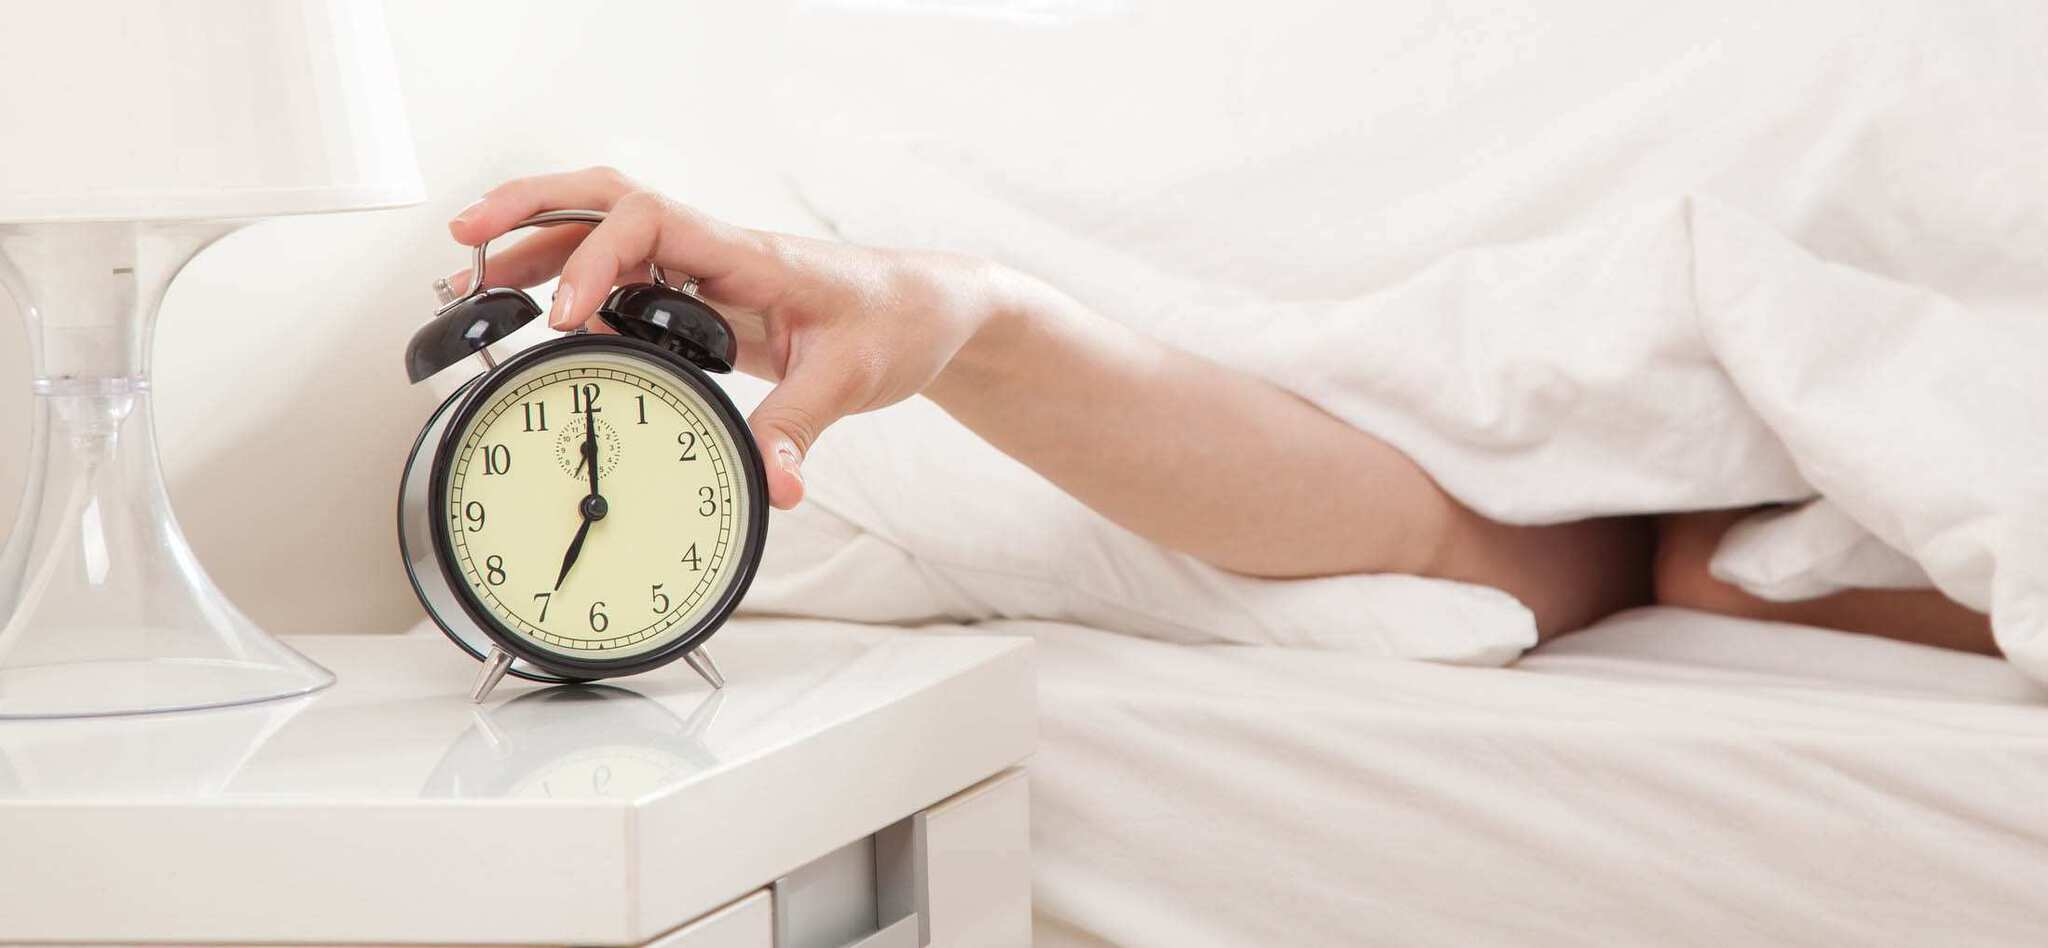 Hand under blanket reaching out for alarm clock, shallow depth of field focus on foreground